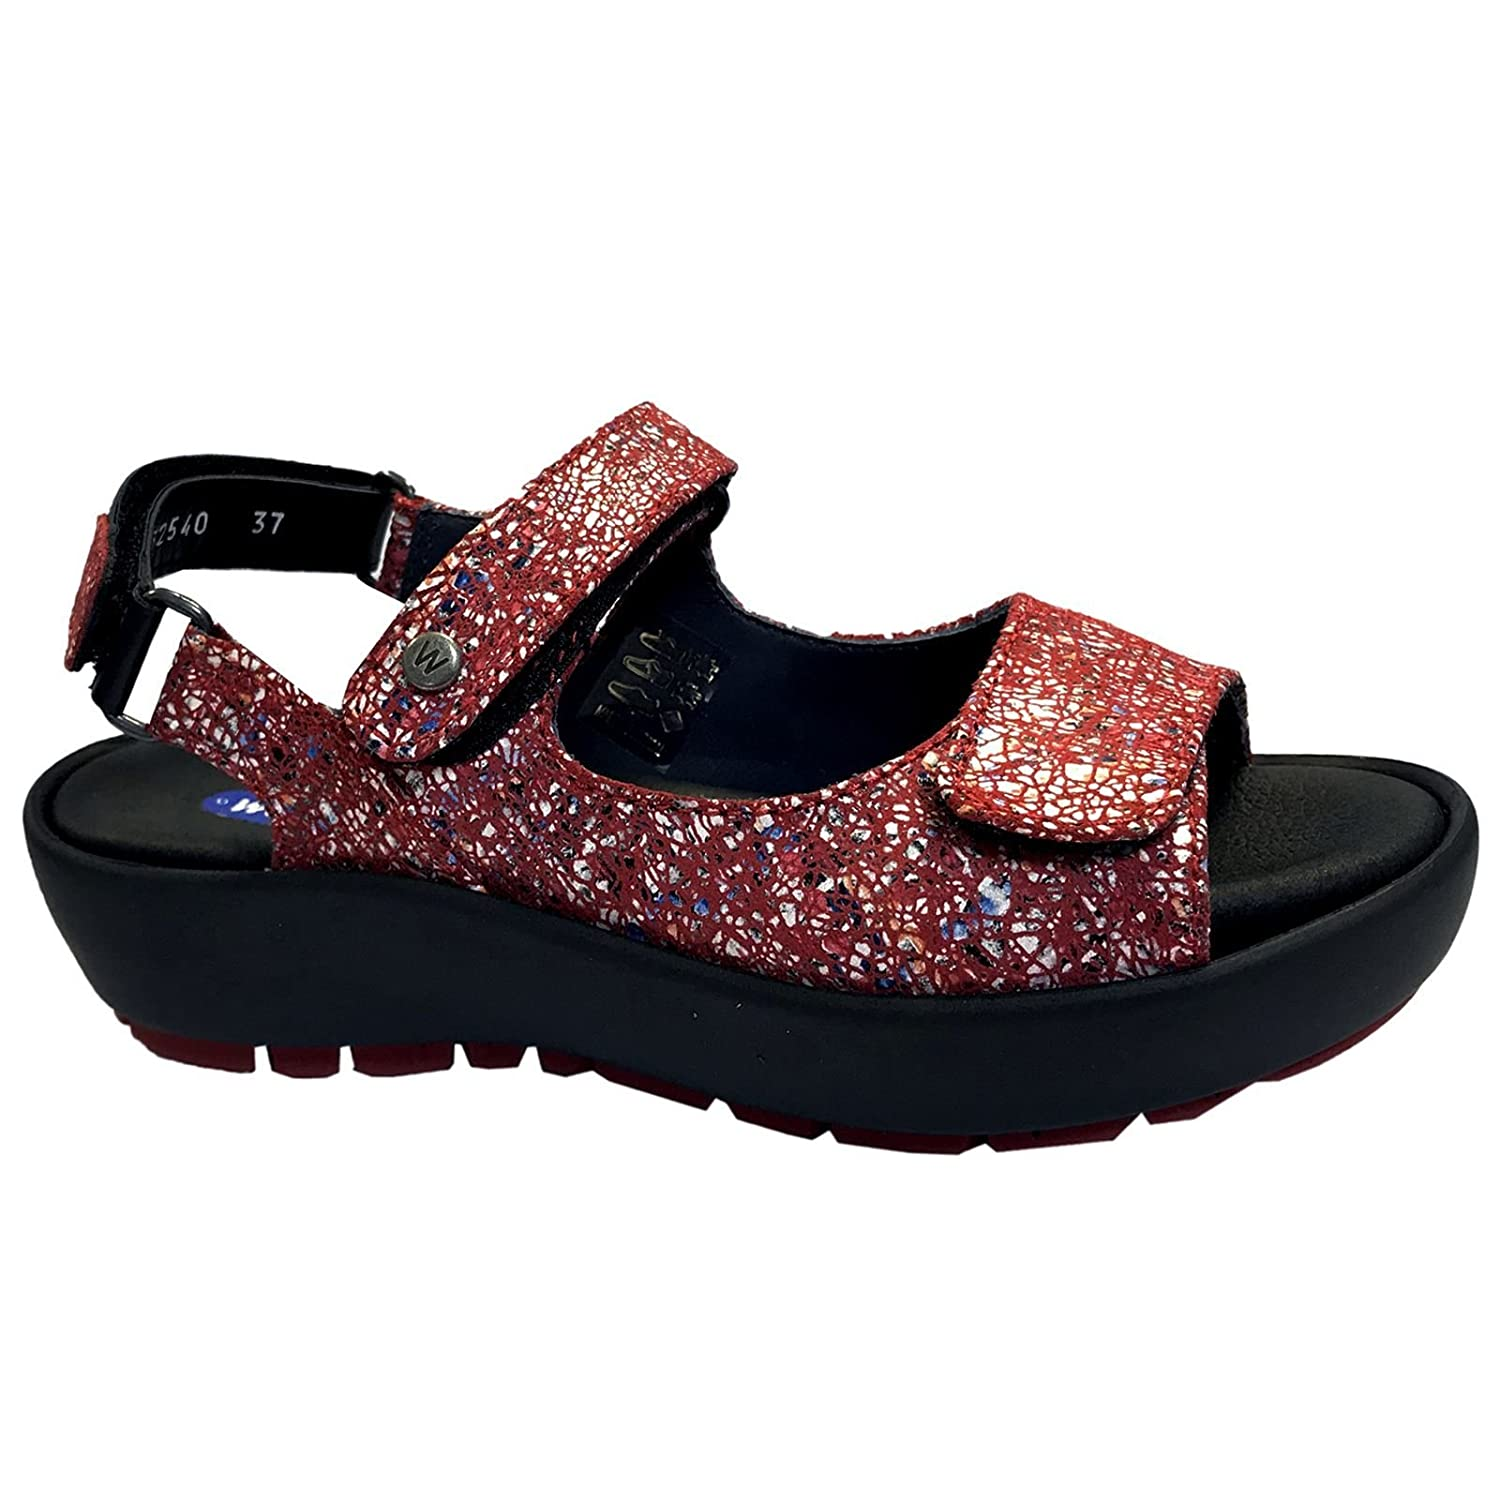 Wolky Comfort Rio B079XGM4G7 43 M EU|40950 Red Multi Suede